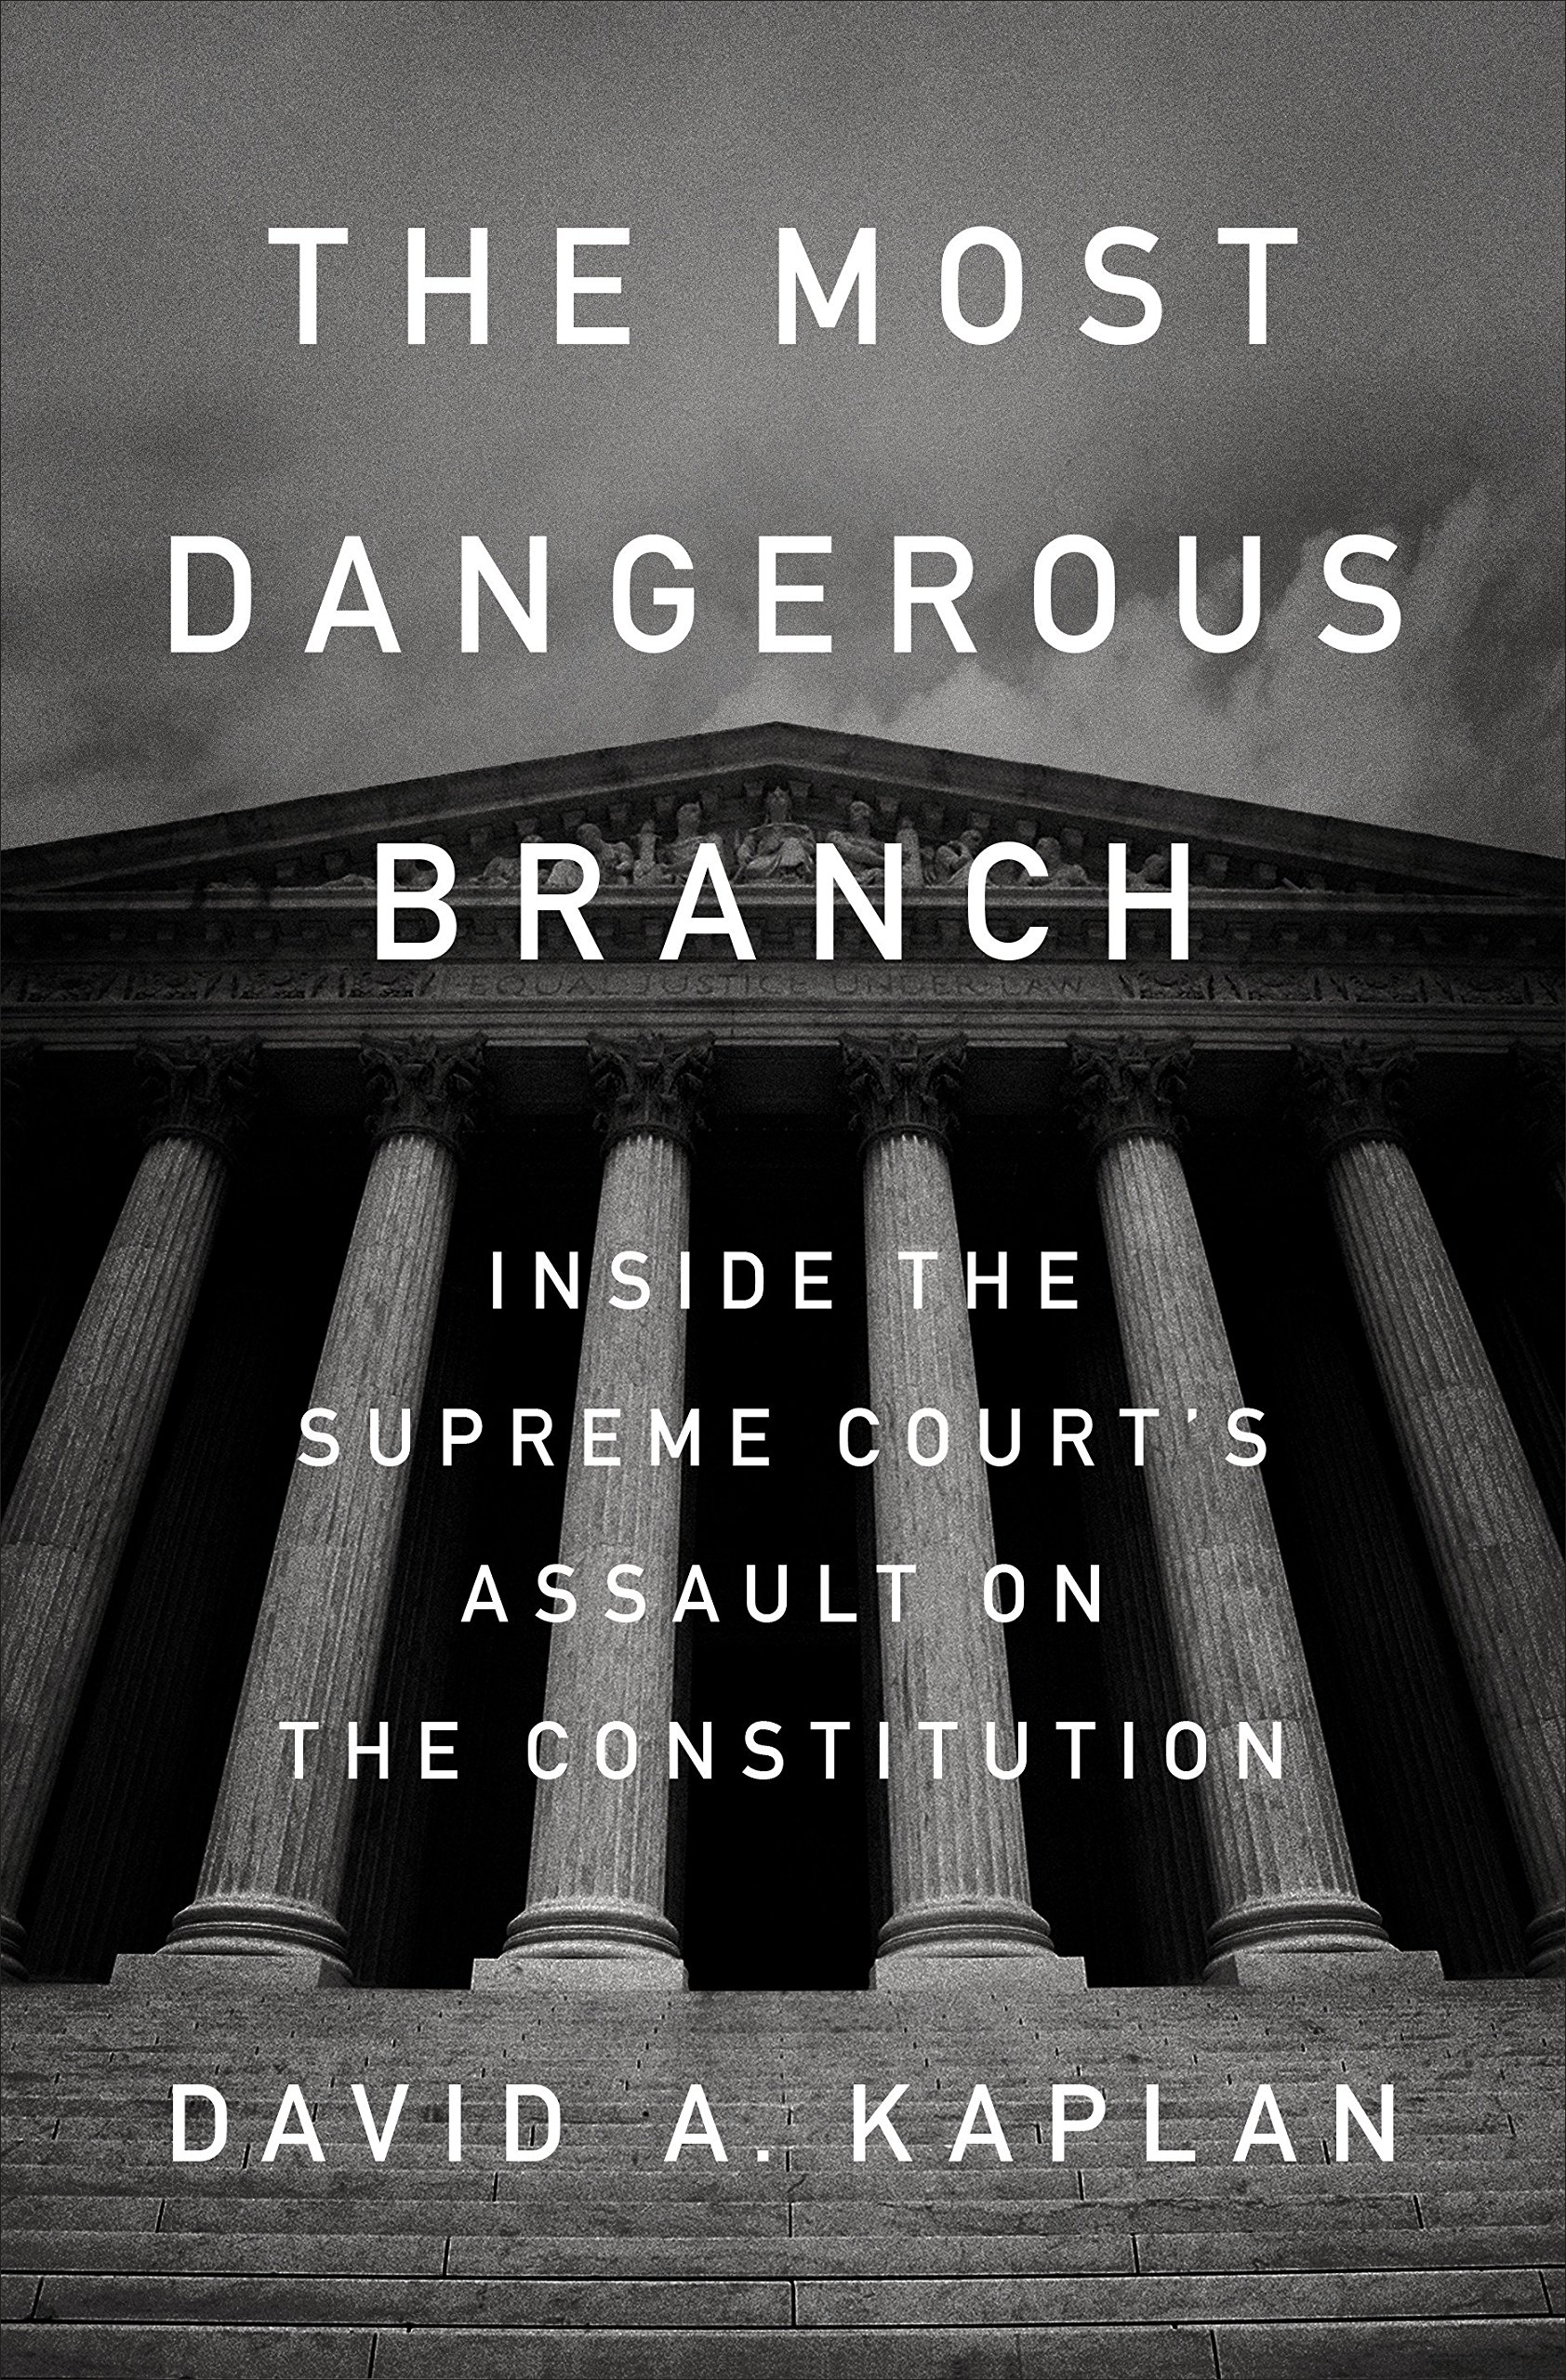 The Most Dangerous Branch: Inside the Supreme Court's Assault on the Constitution